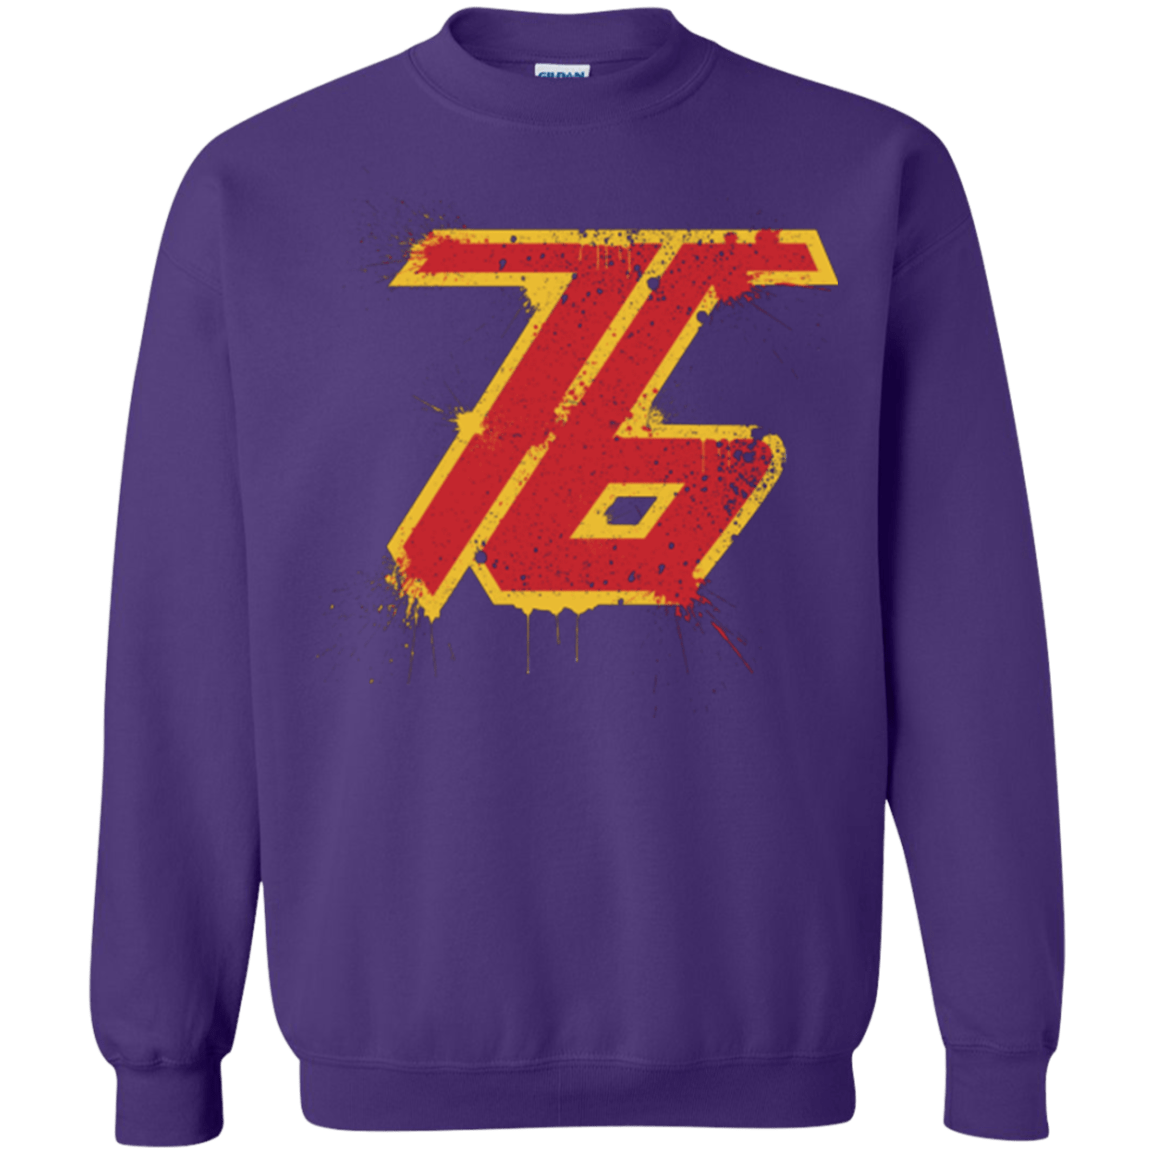 Sweatshirts Purple / Small Soldier 76 Crewneck Sweatshirt